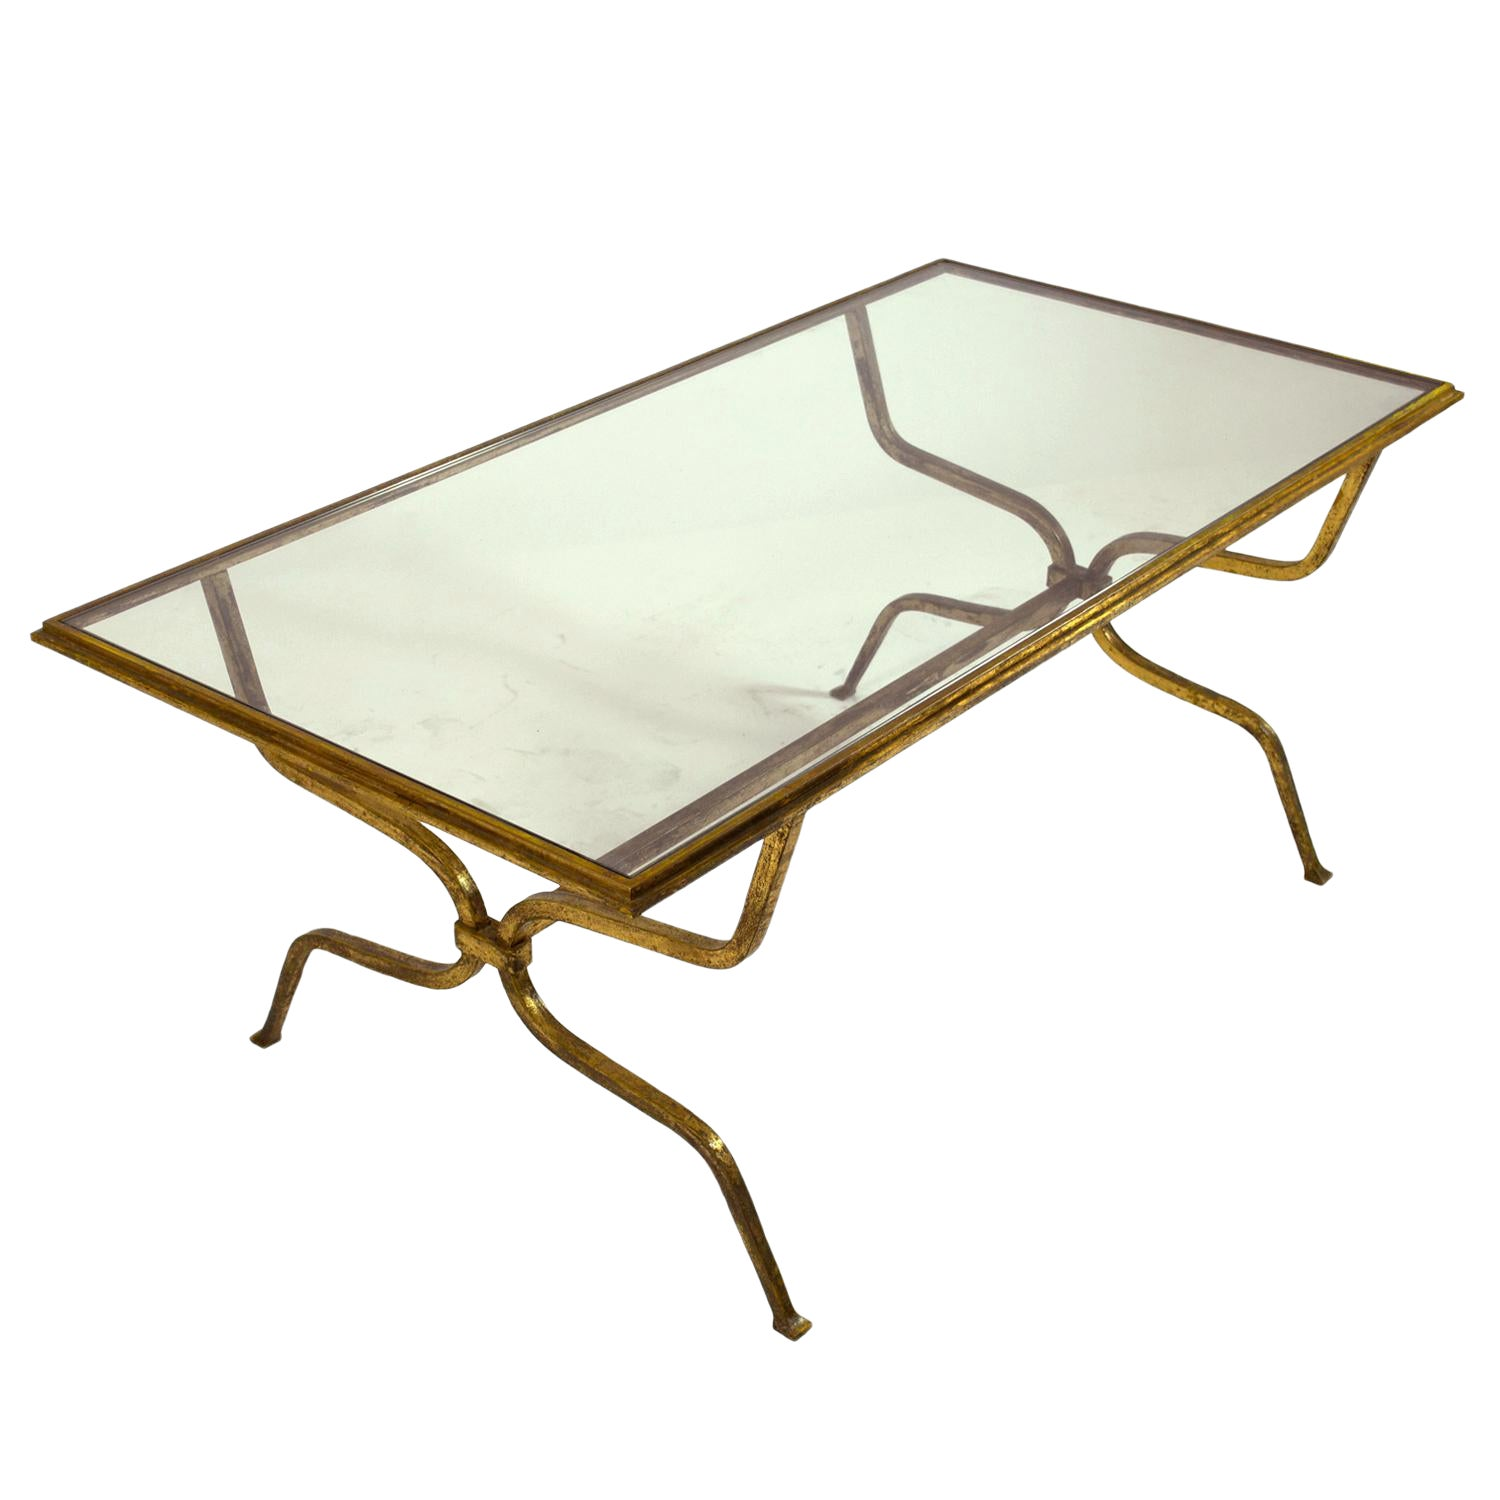 Glass Coffee Table Images.Maison Ramsay Gilt Iron And Glass Coffee Table